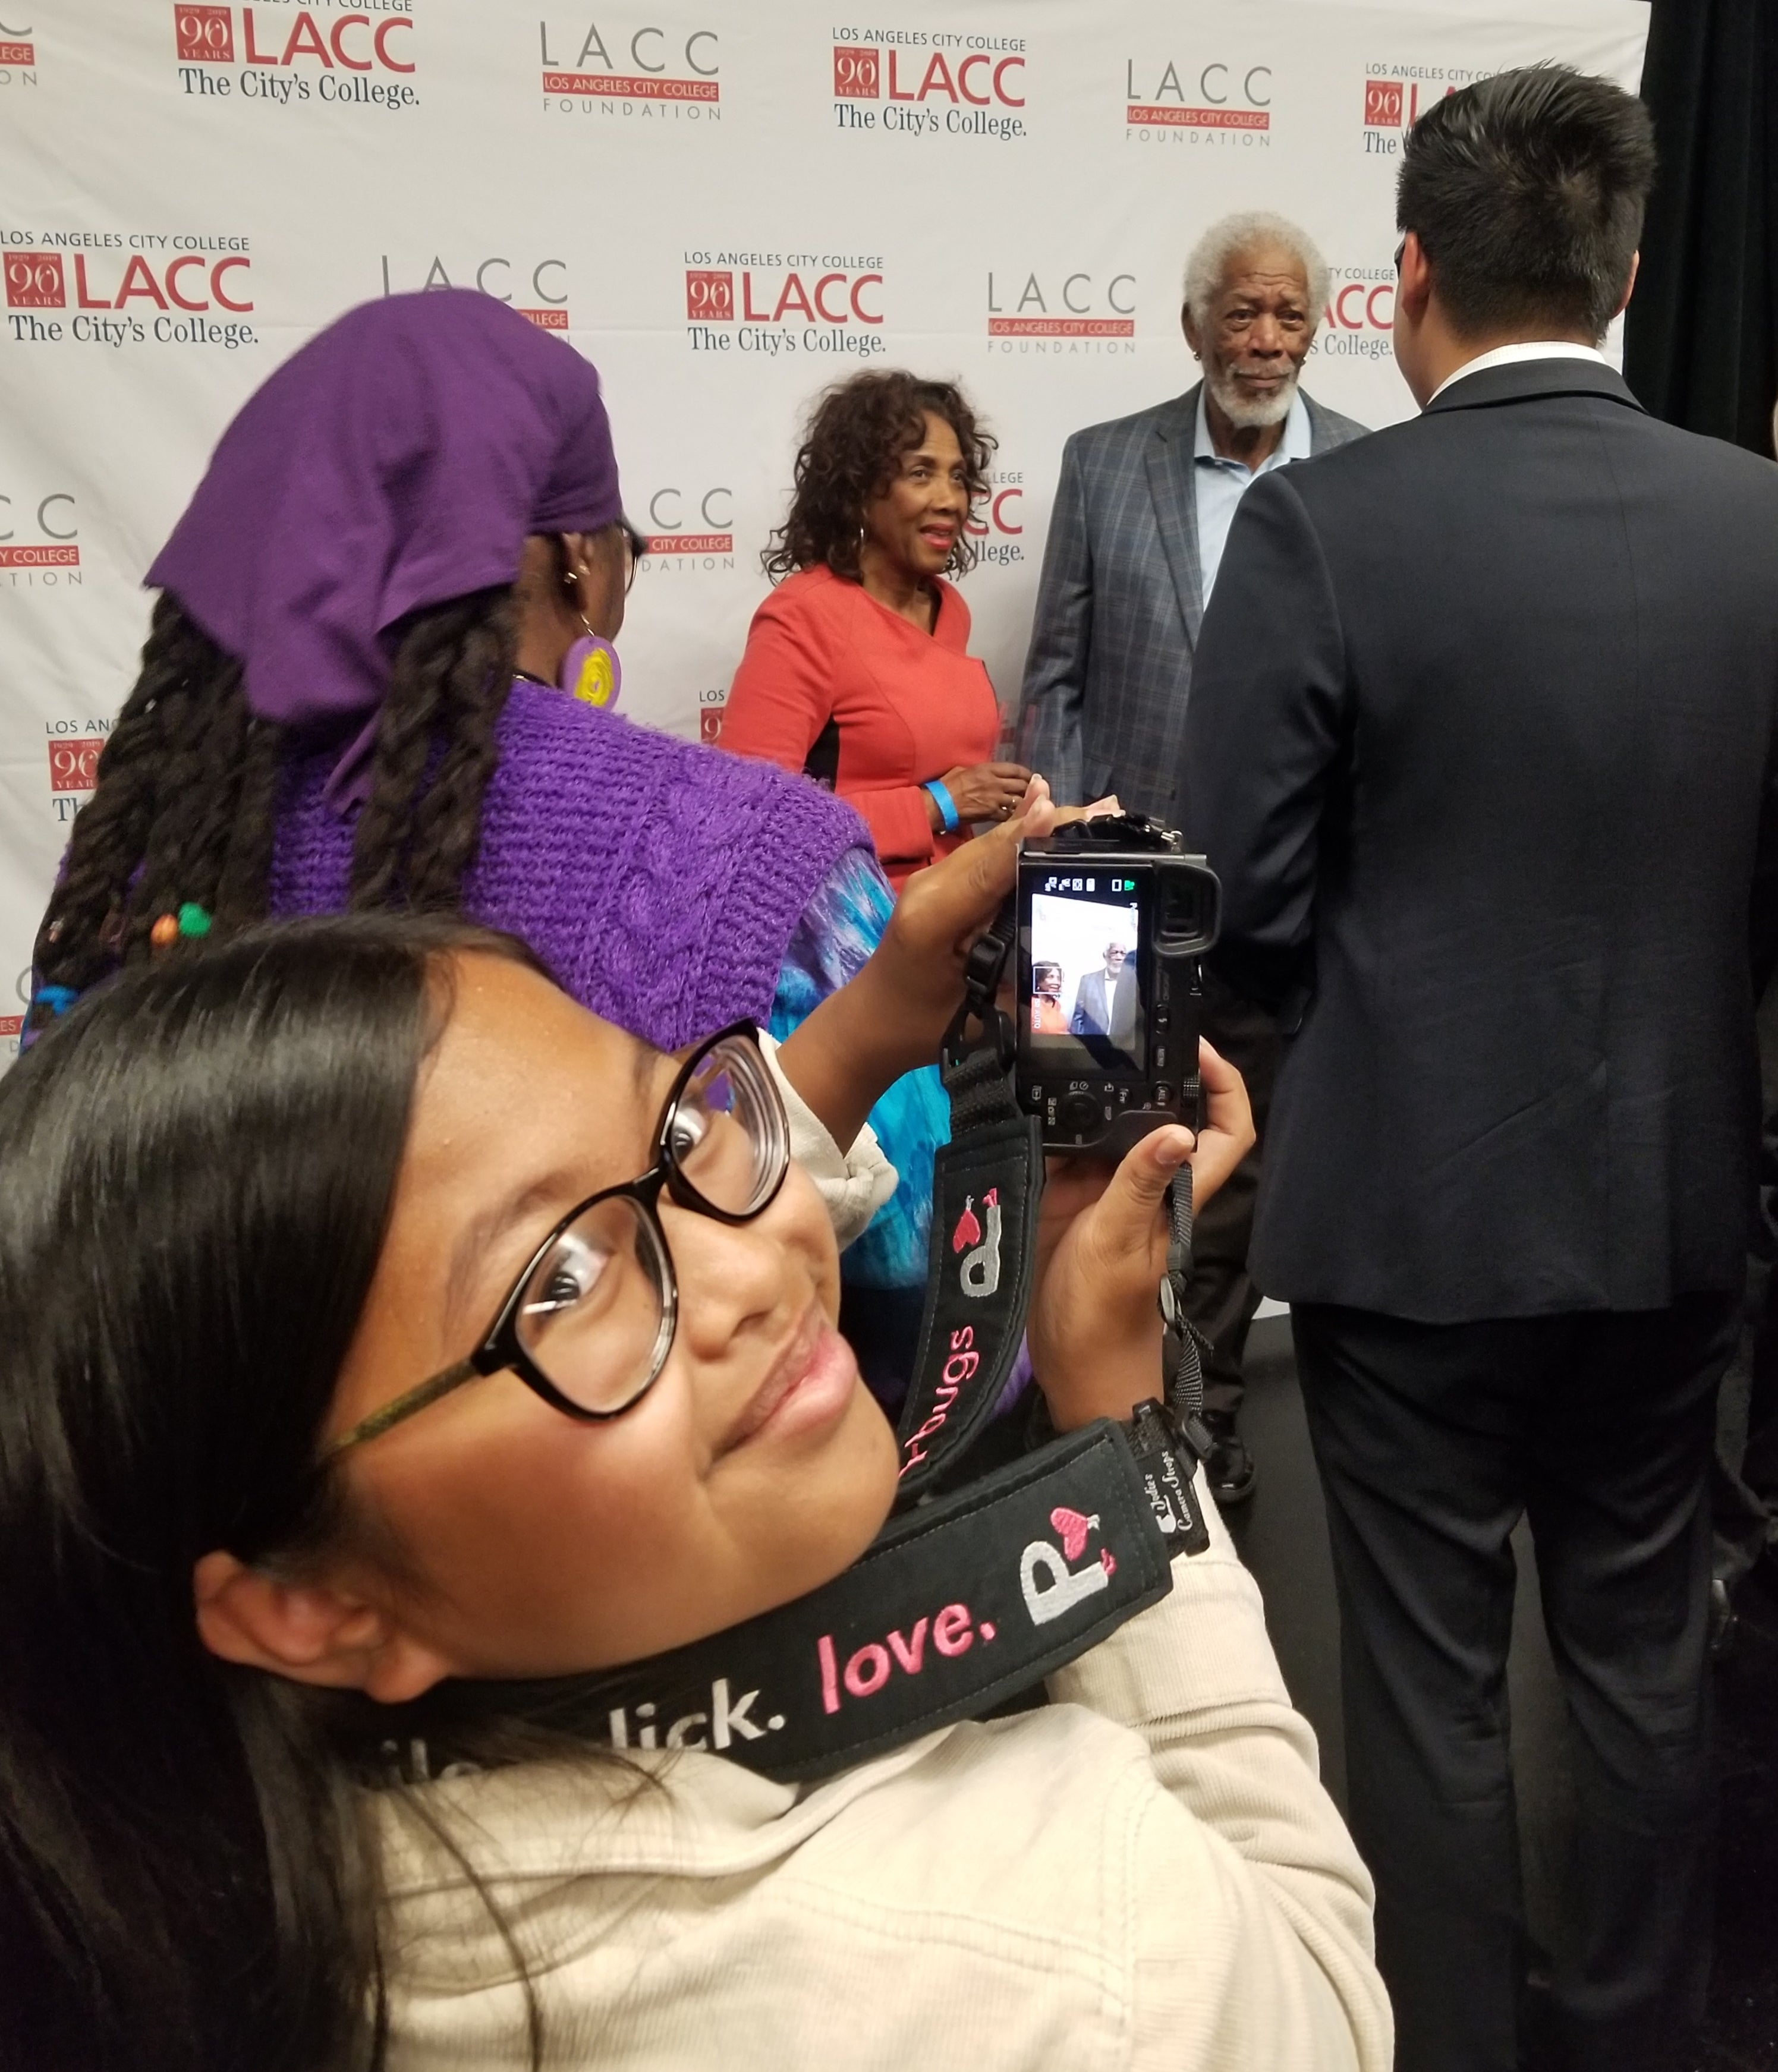 Francine Gascon phptographing Morgan Freeman at the LACC inauguration